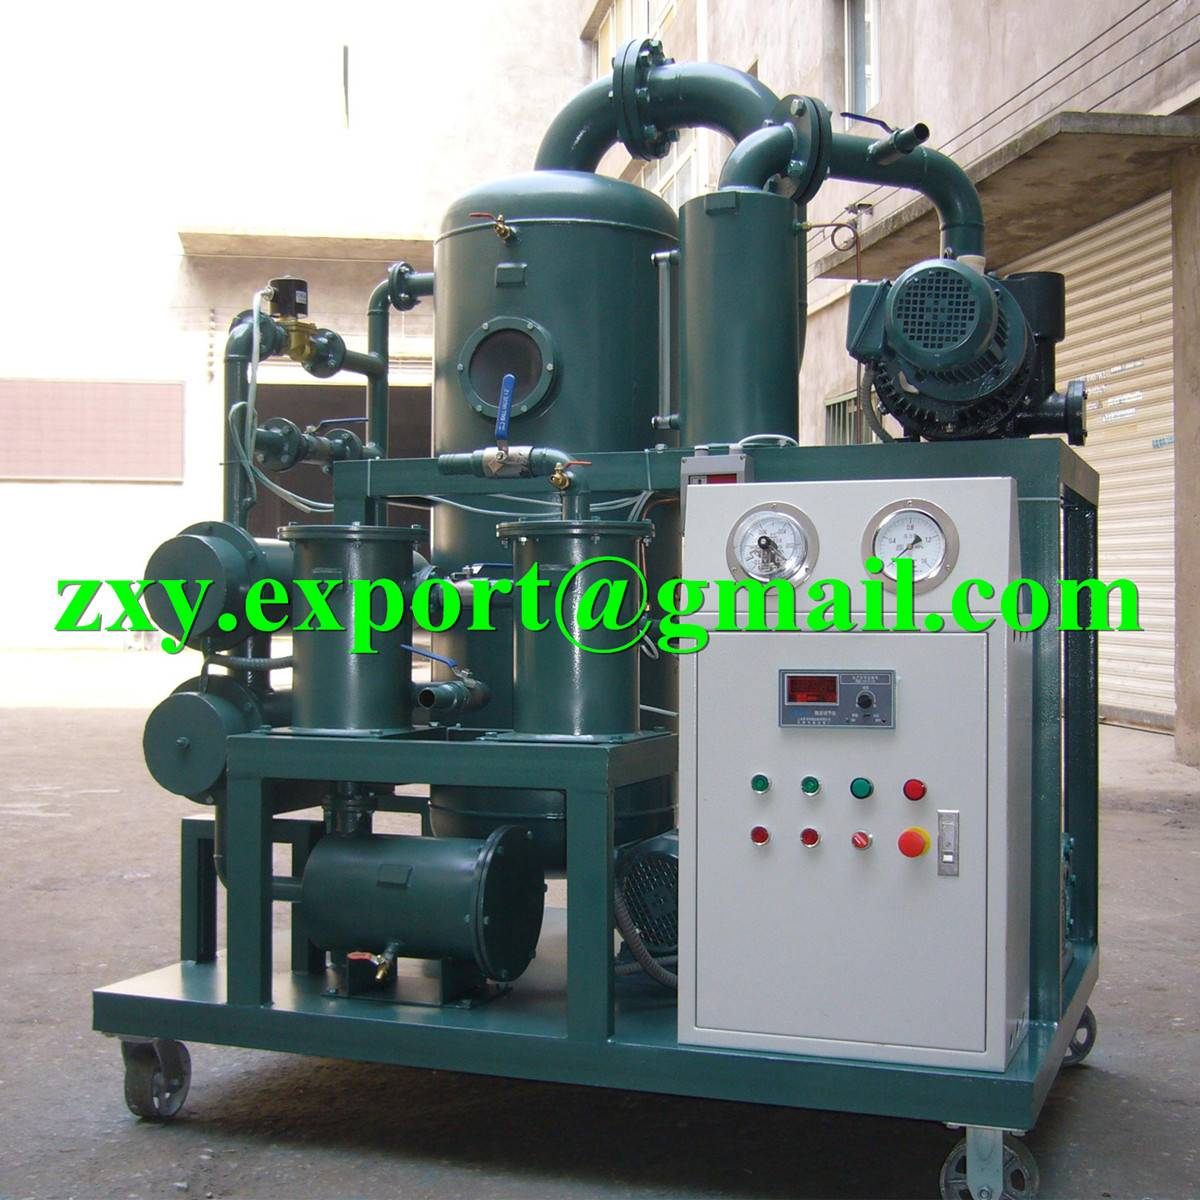 Insulating Oil Filtration Plant, Dielectric Transformer Oil Dehydration System